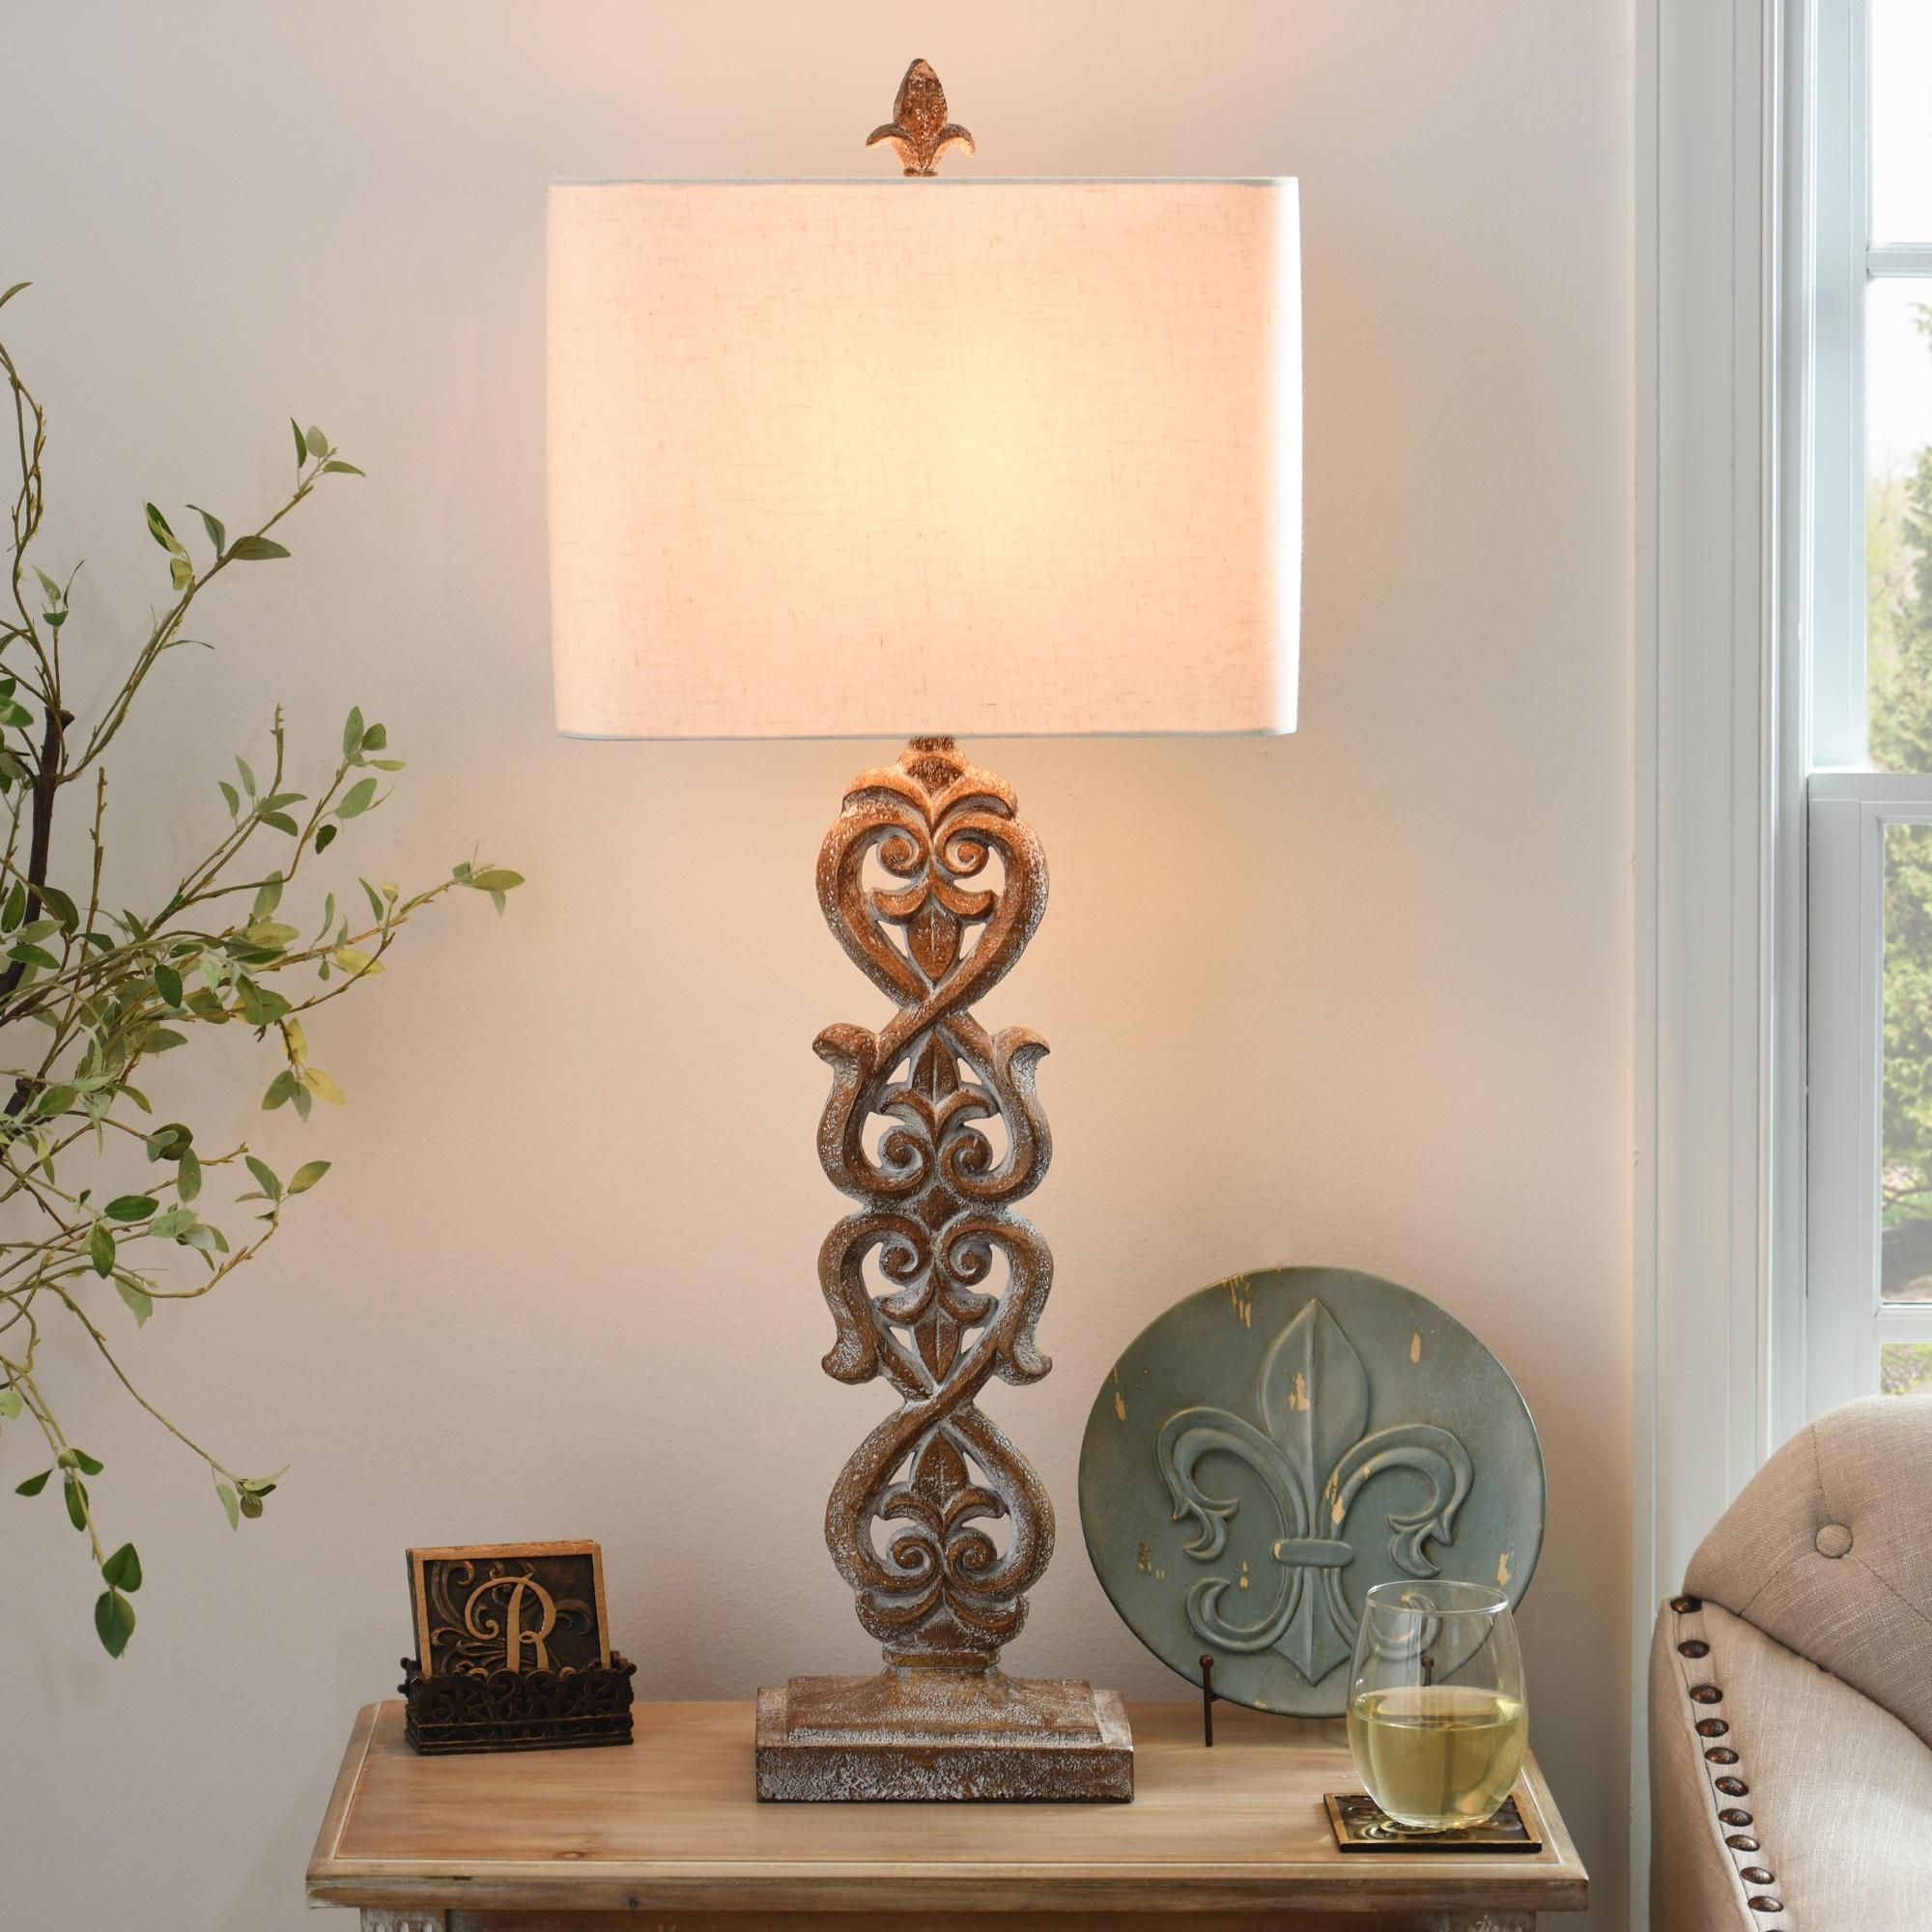 Carved Kerala Table Lamp. Bedroom Decorating TipsBudget ...